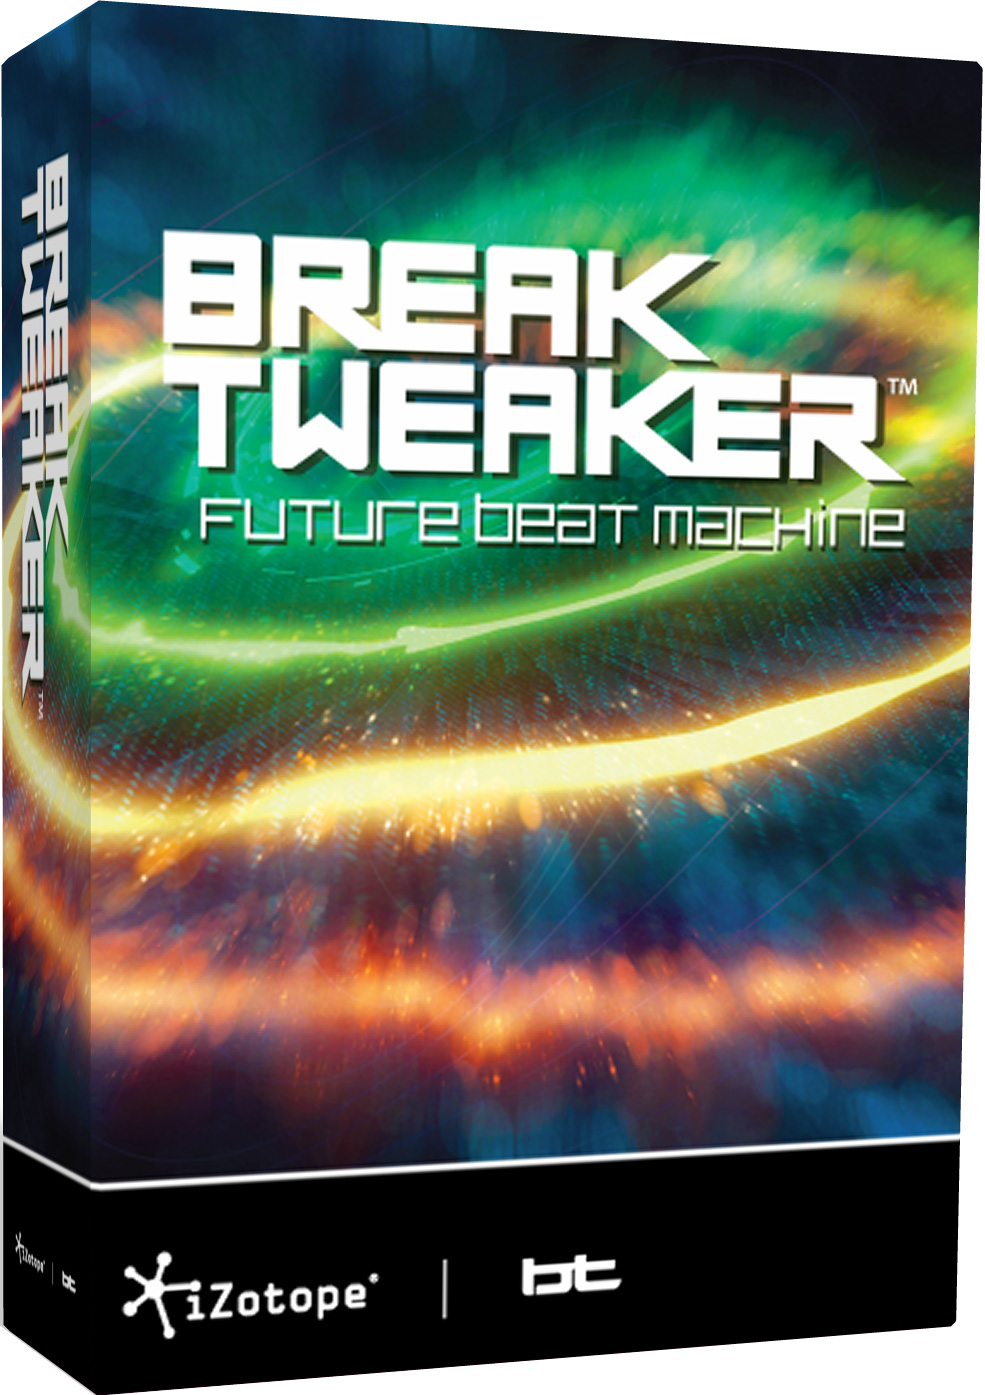 izotope_breaktweaker_box_crop